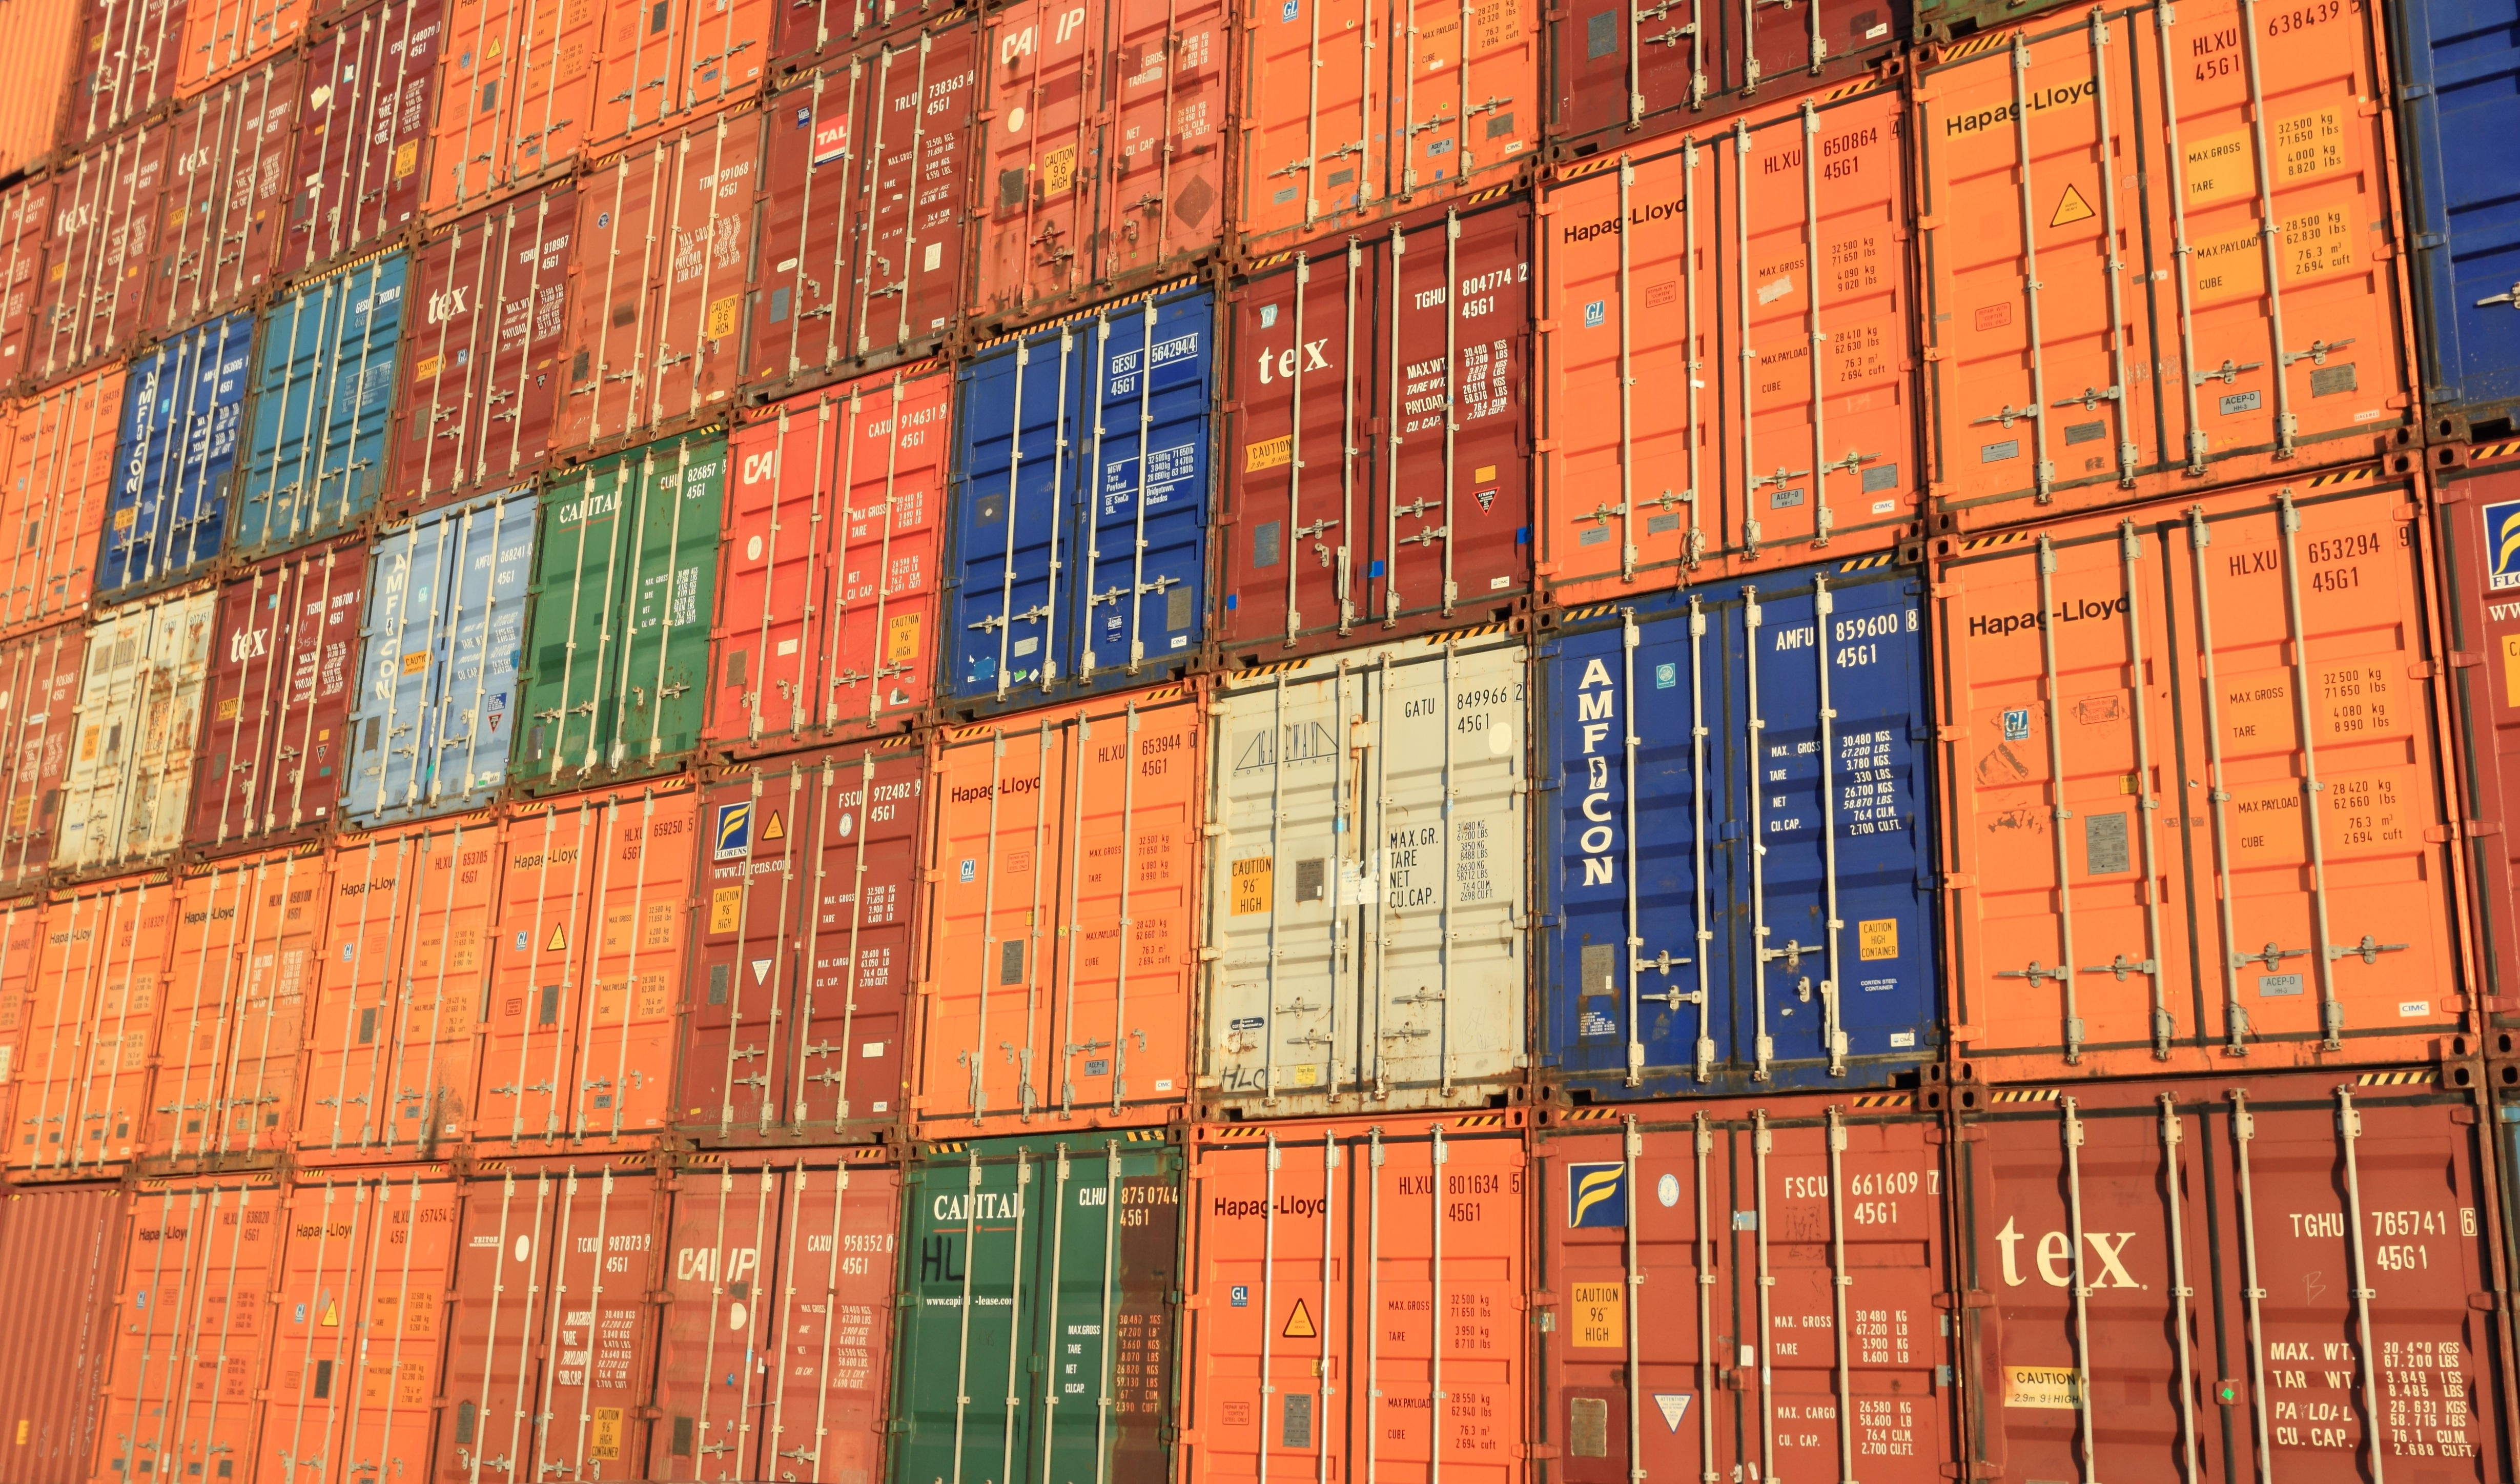 containerpic.jpeg